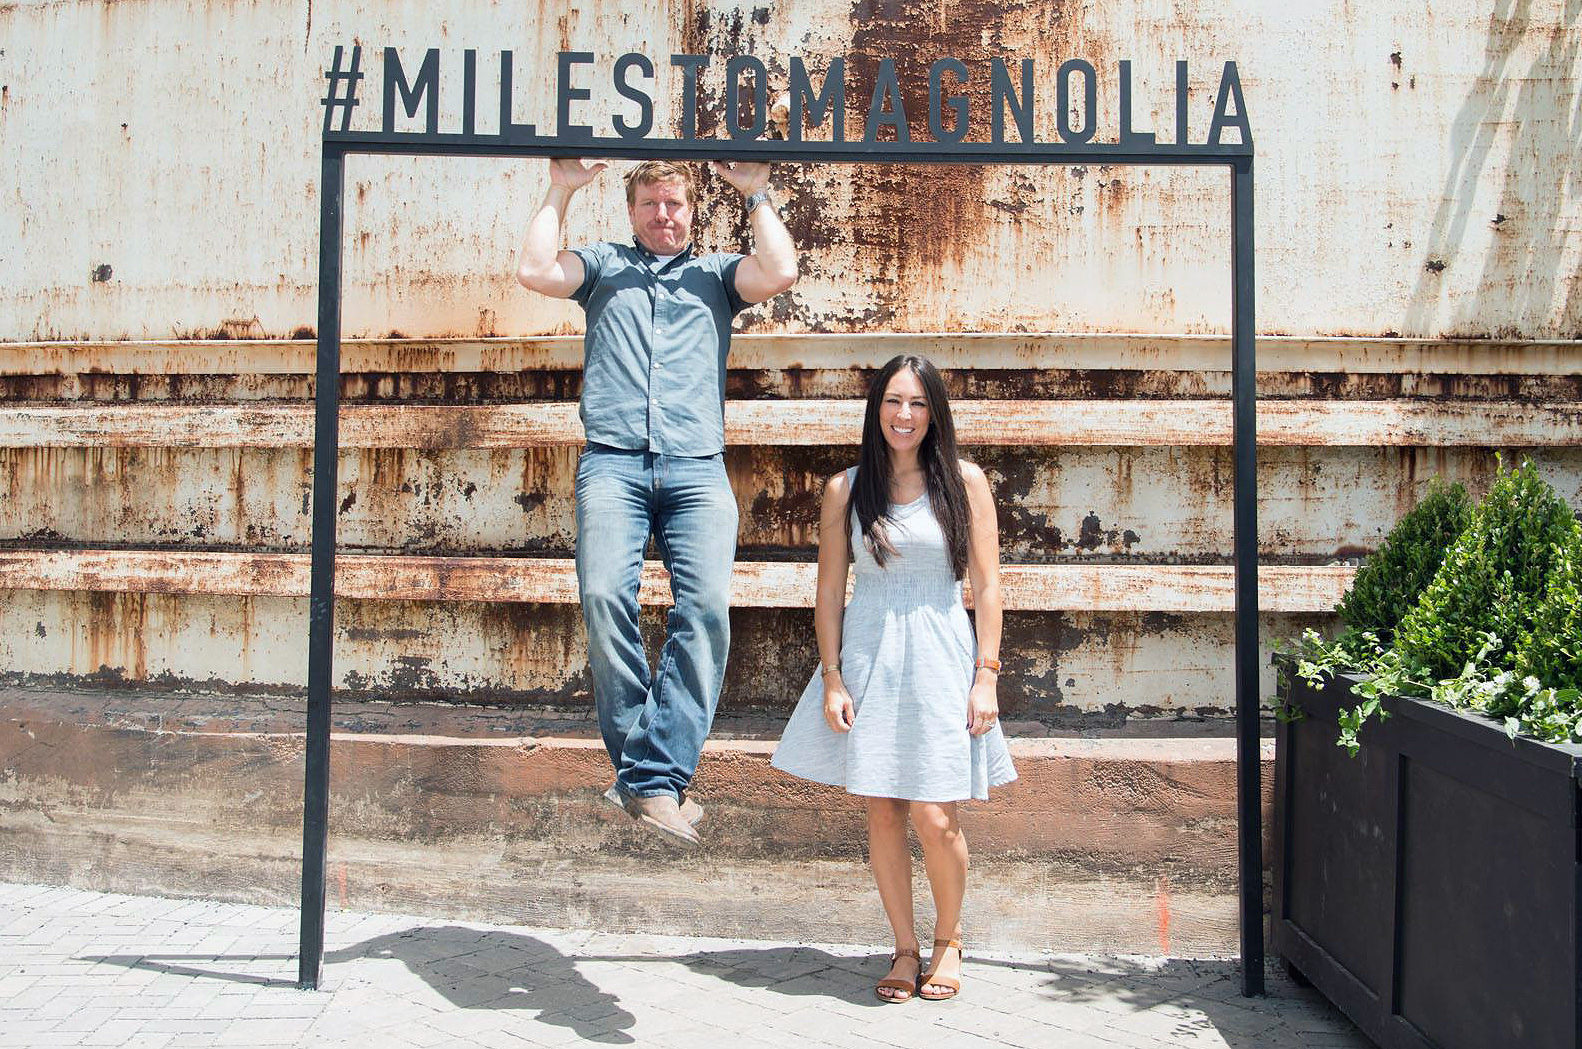 Chip and Joanna posing for a picture. Chip is doing pull ups on a stand that days #MILESTOMANGOLIA and Joanna is standing smiling white dress